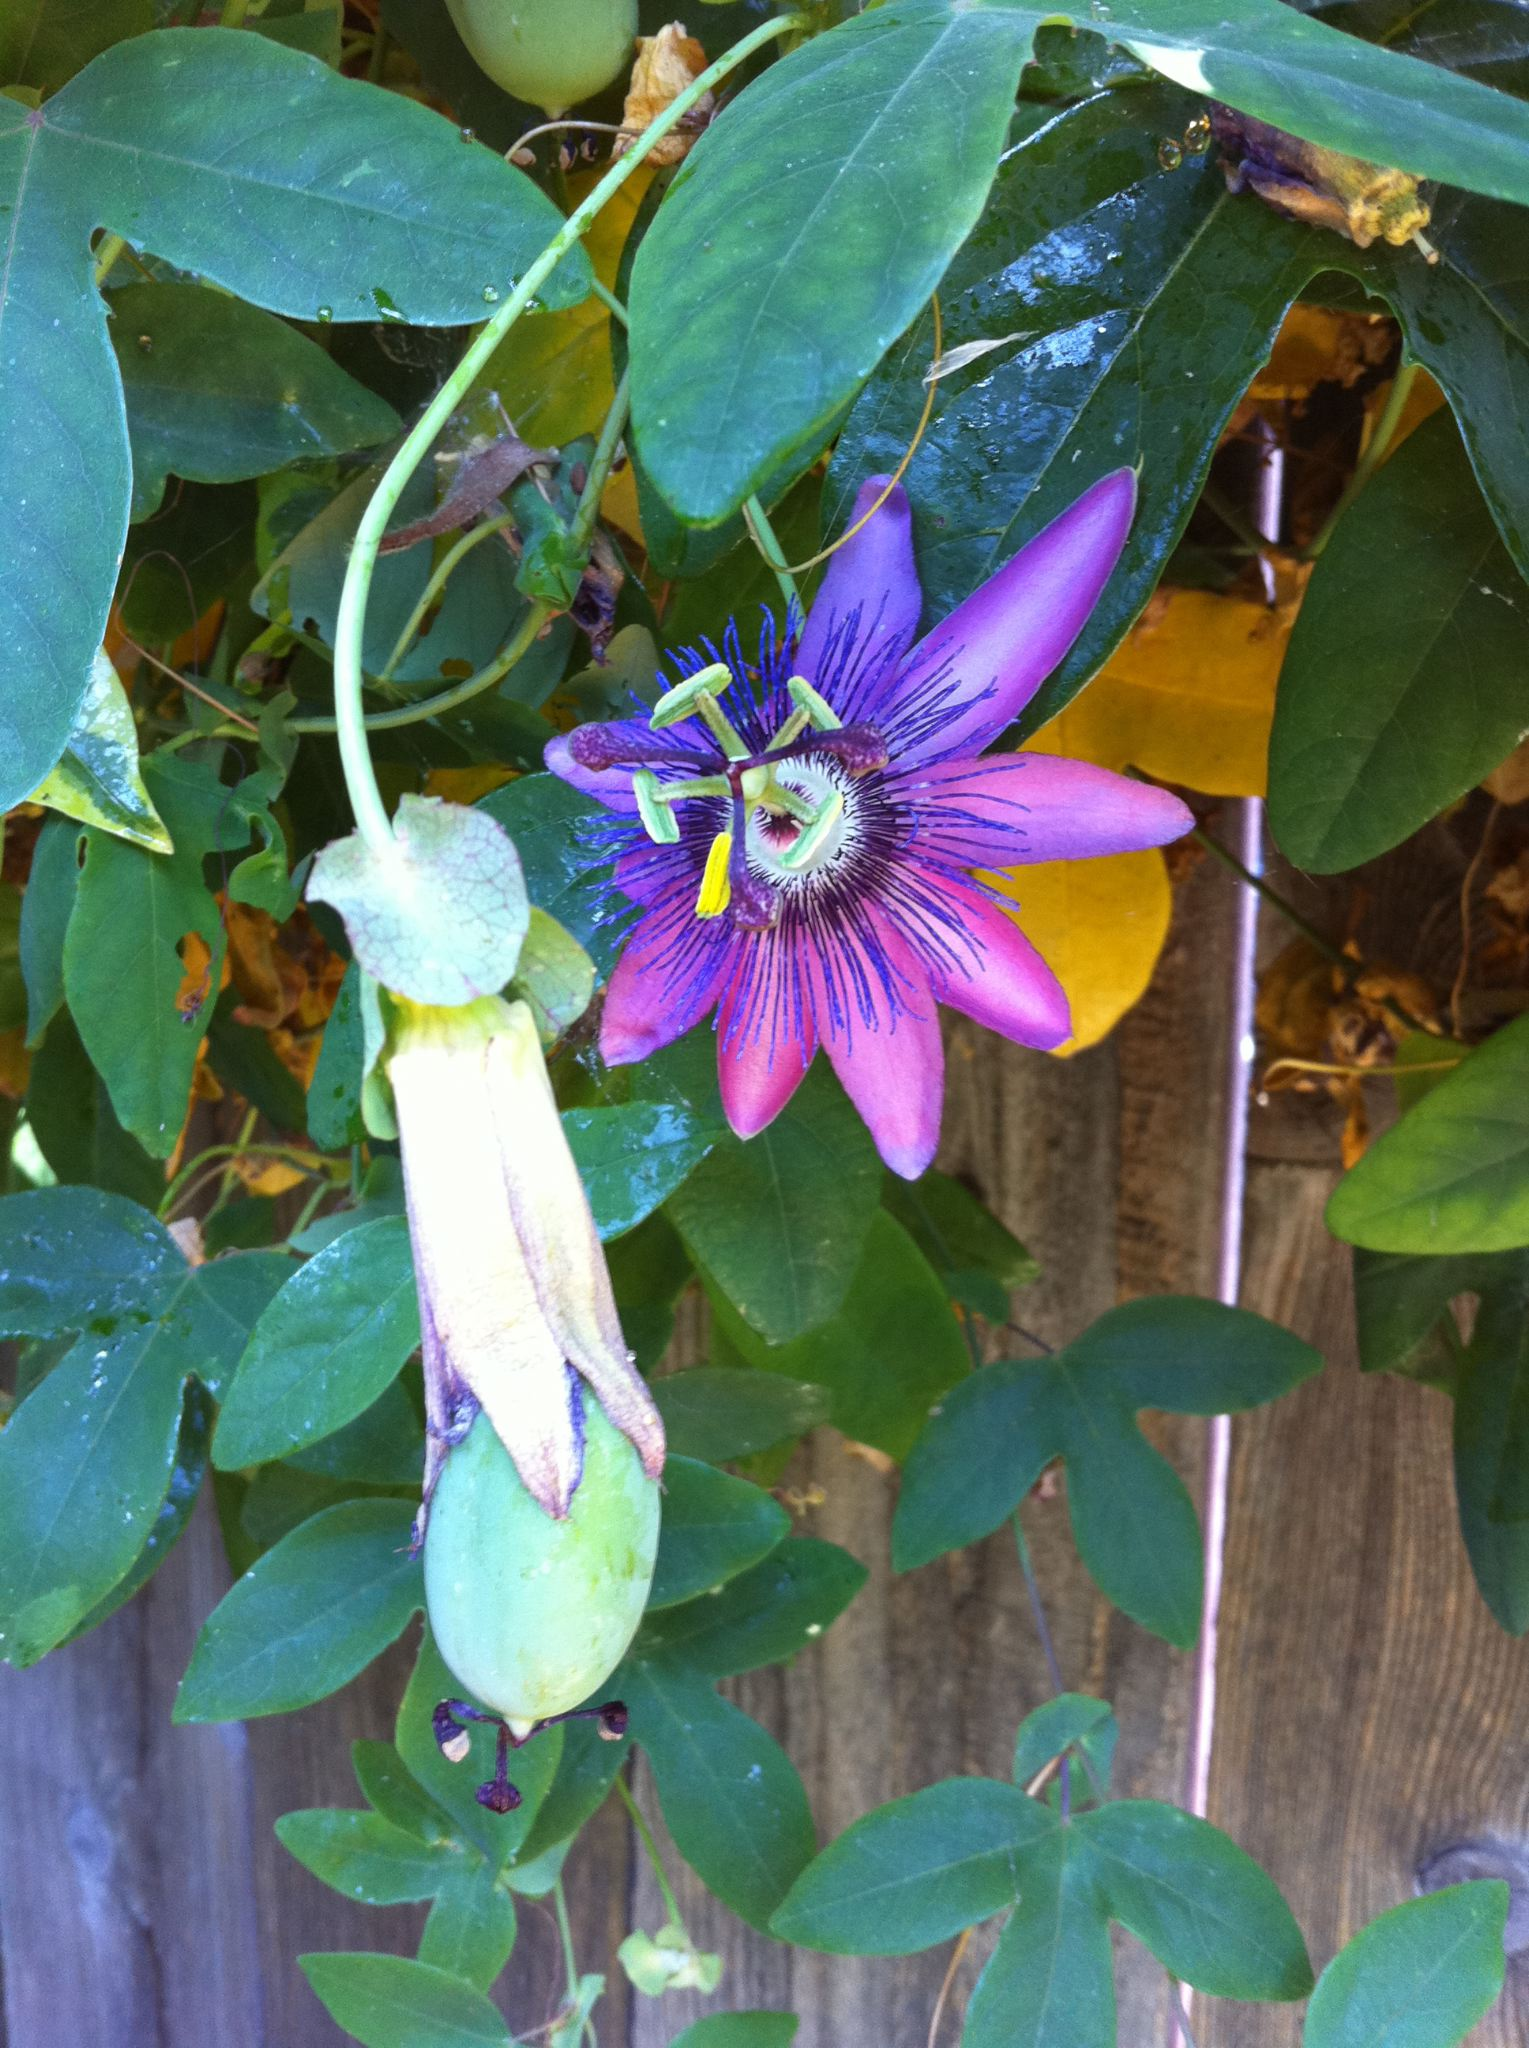 passiflora flower with passion fruit still developing - July 2010